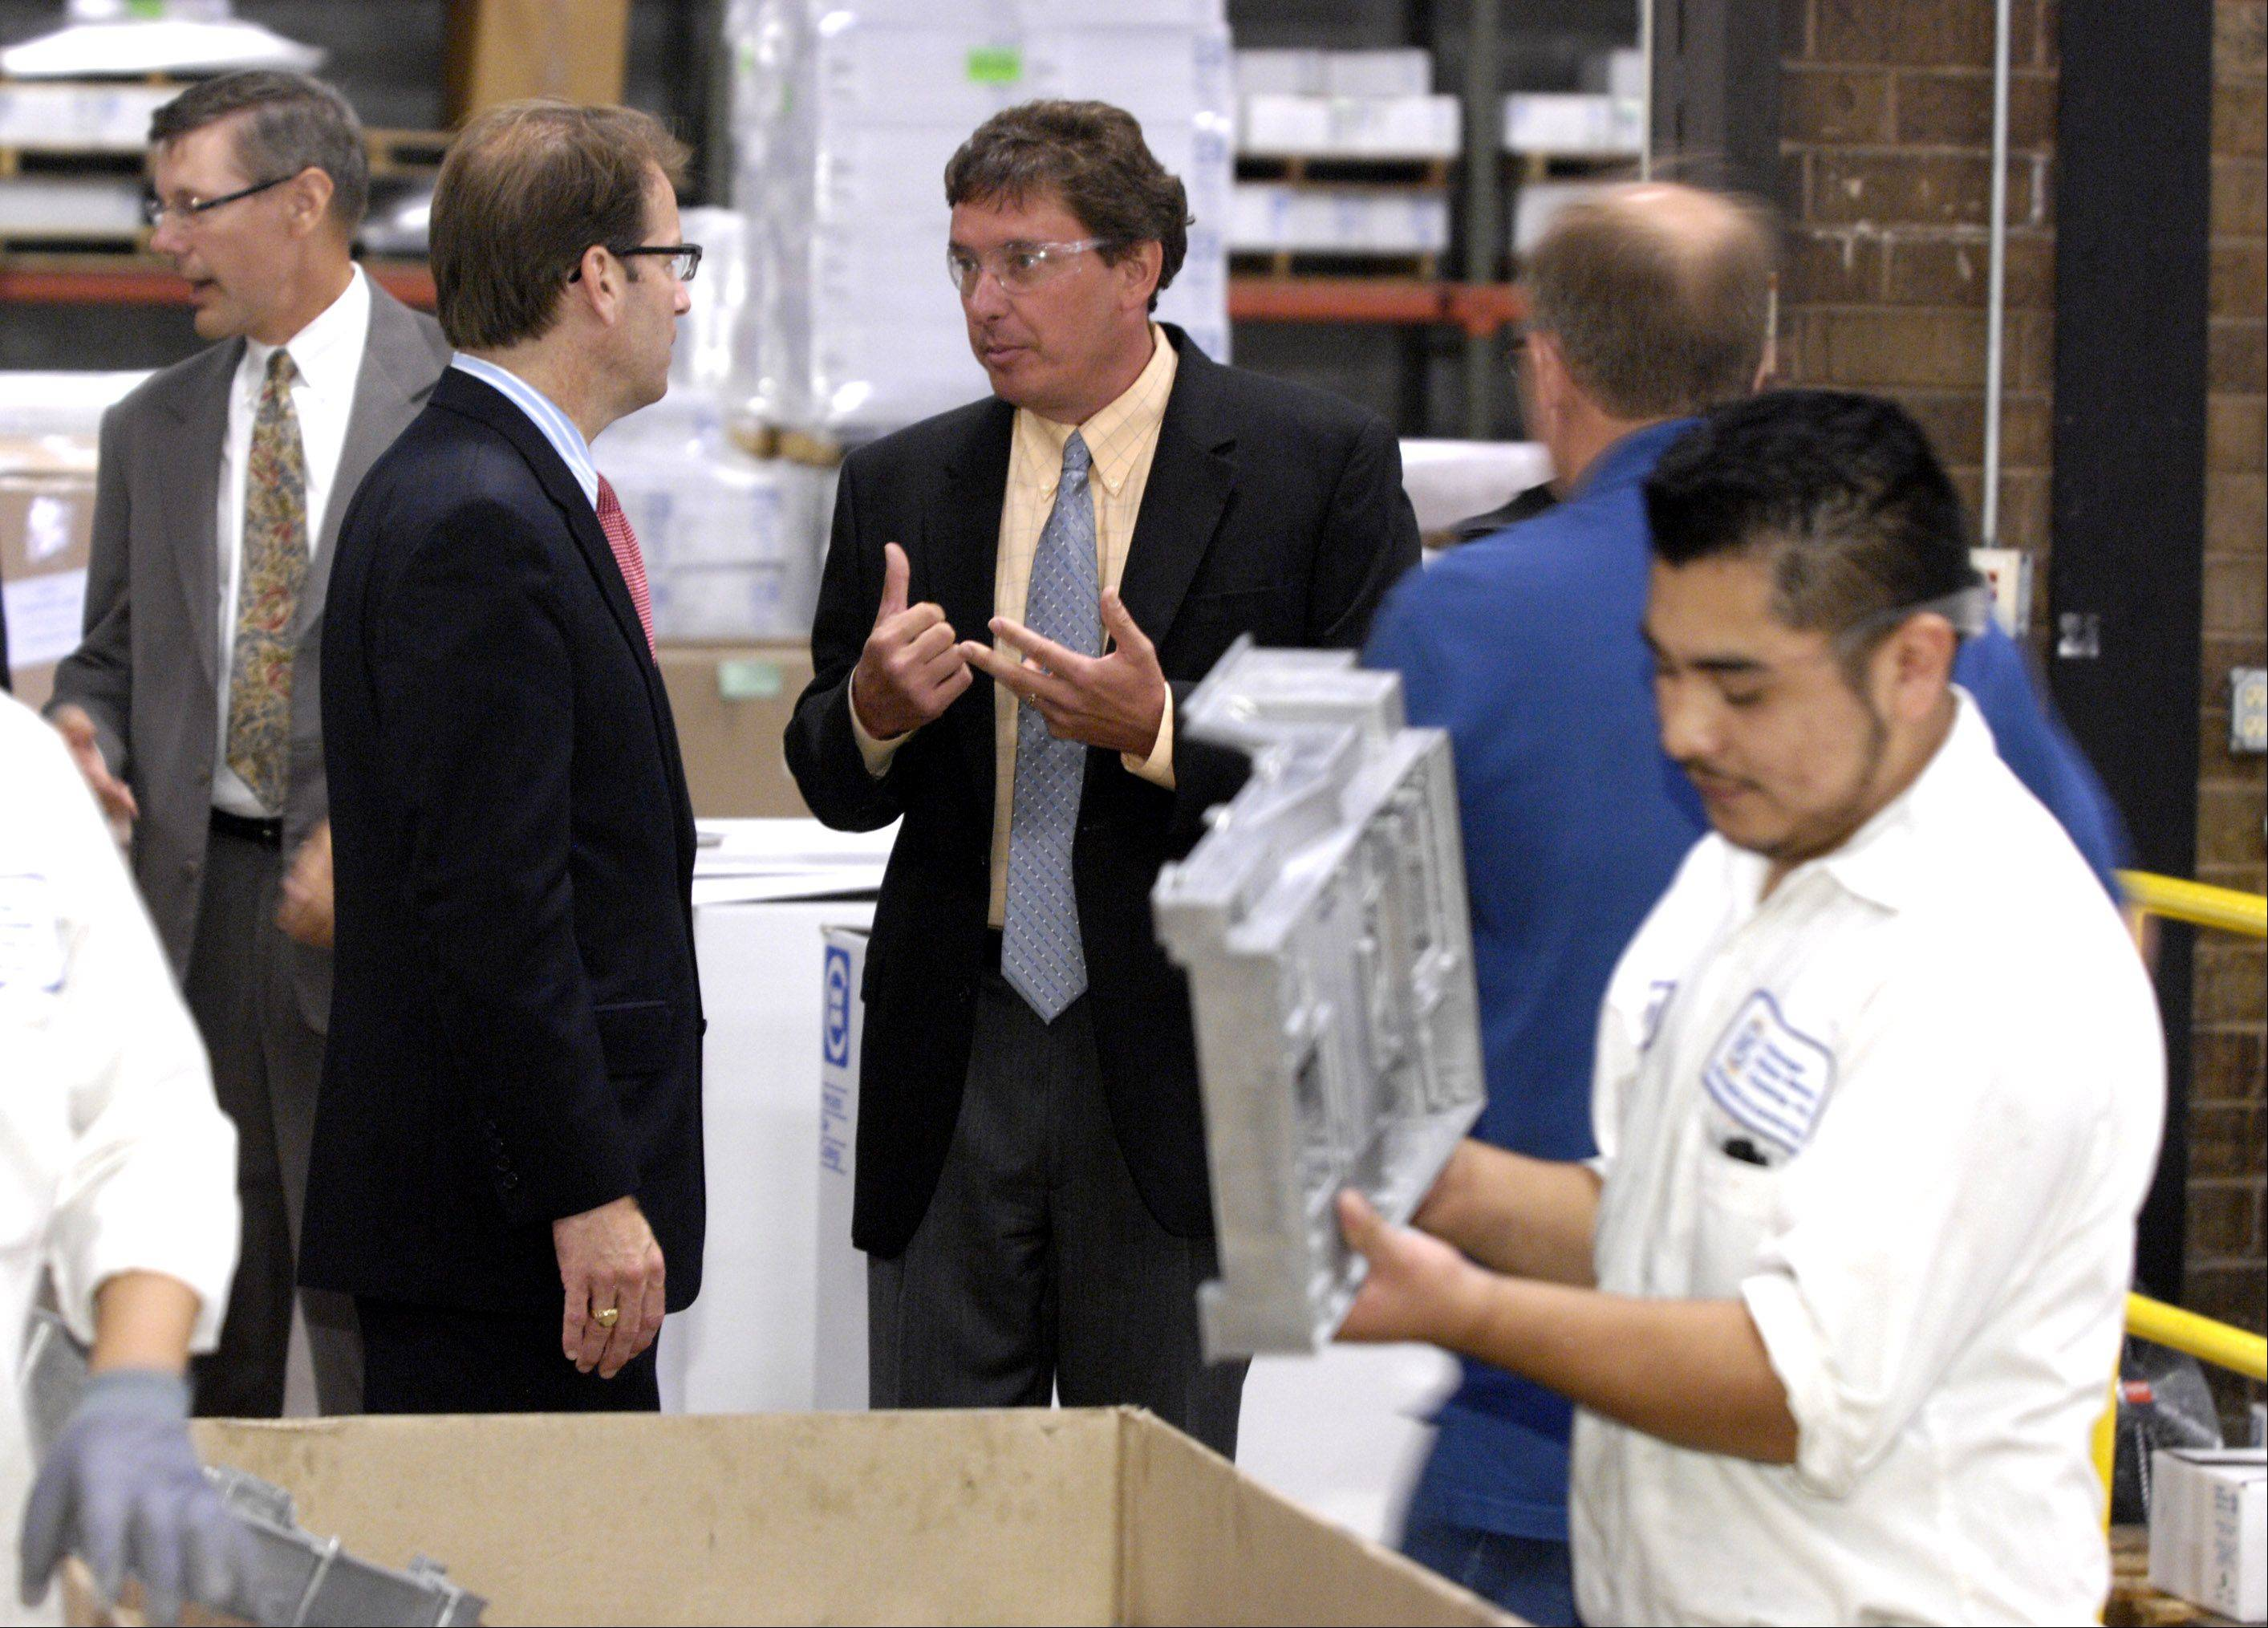 Bensenville businessman showcased at Obama jobs talk